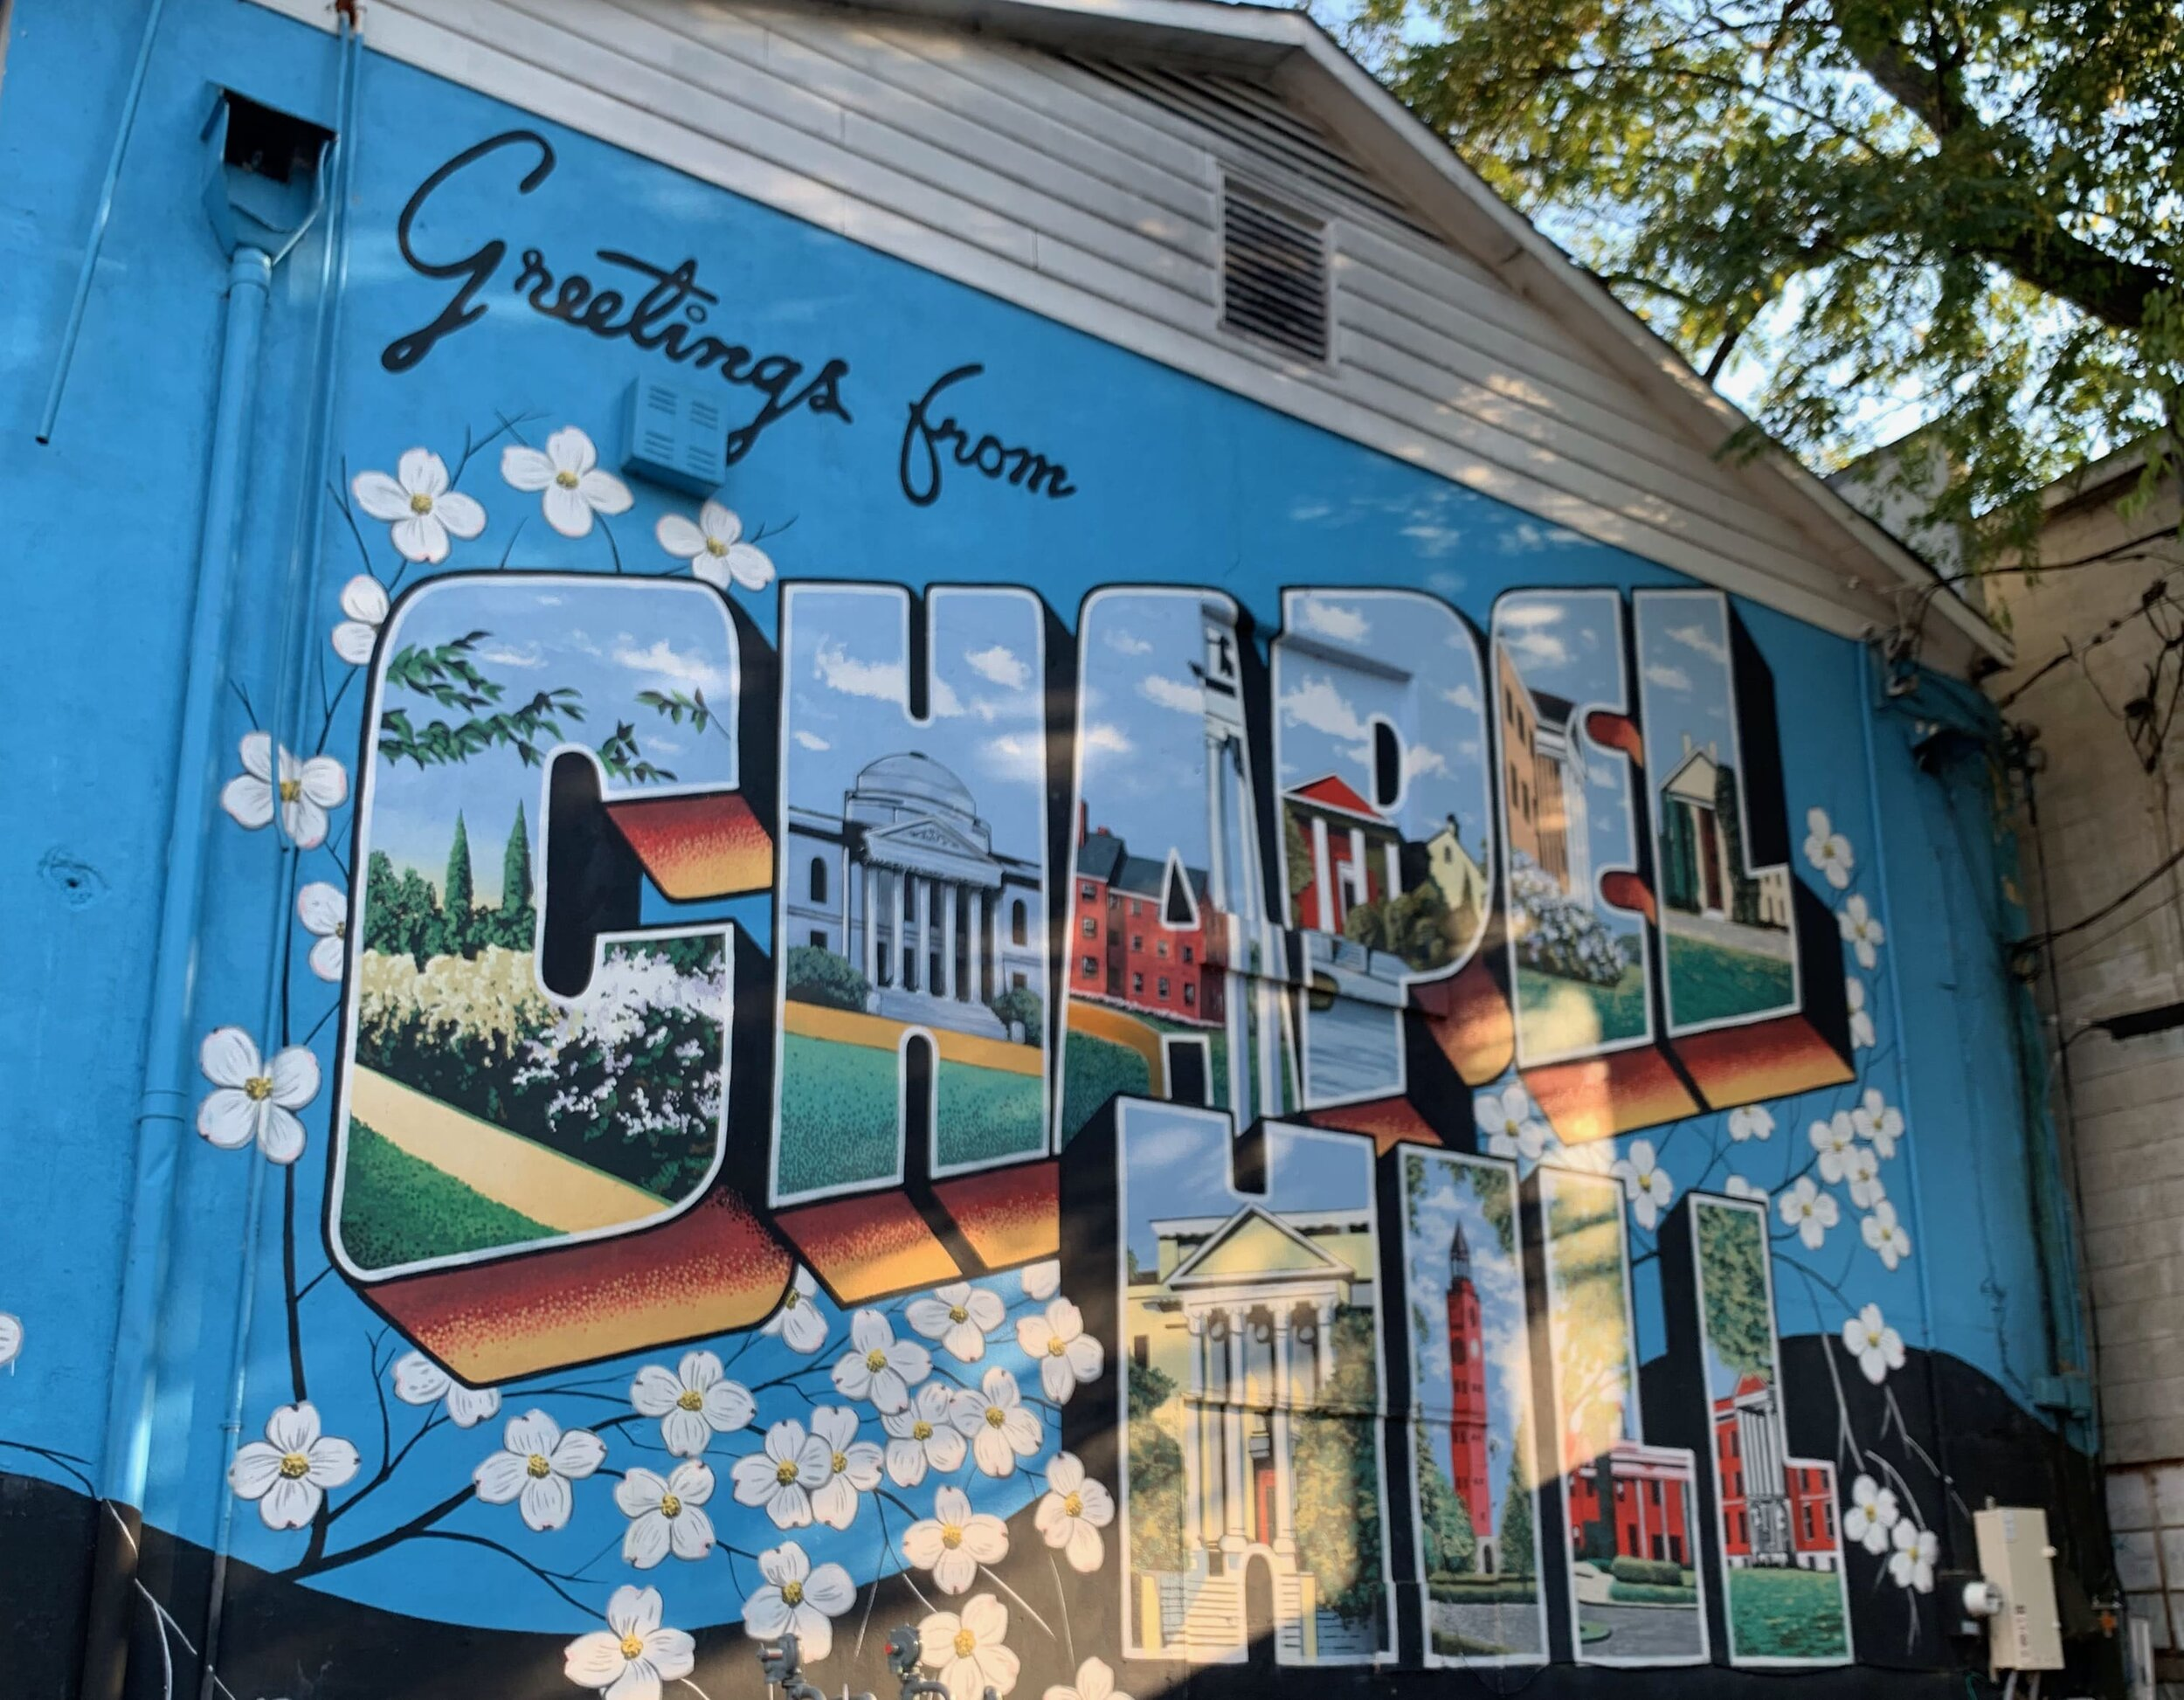 The mural for Chapel Hill, North Carolina